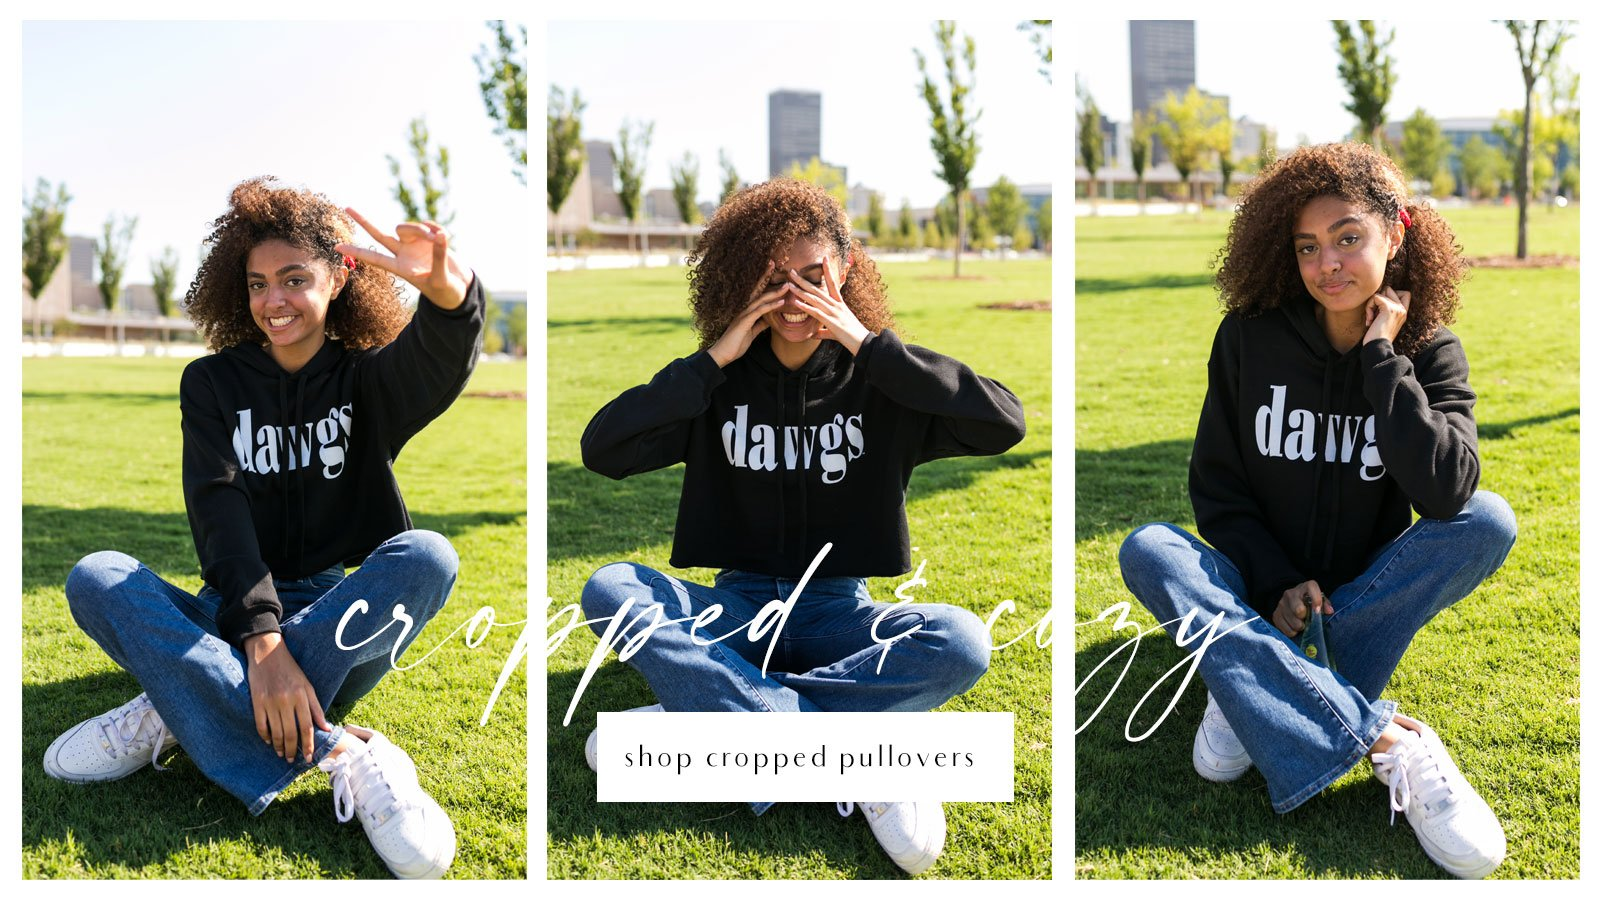 dawgs cropped pullover